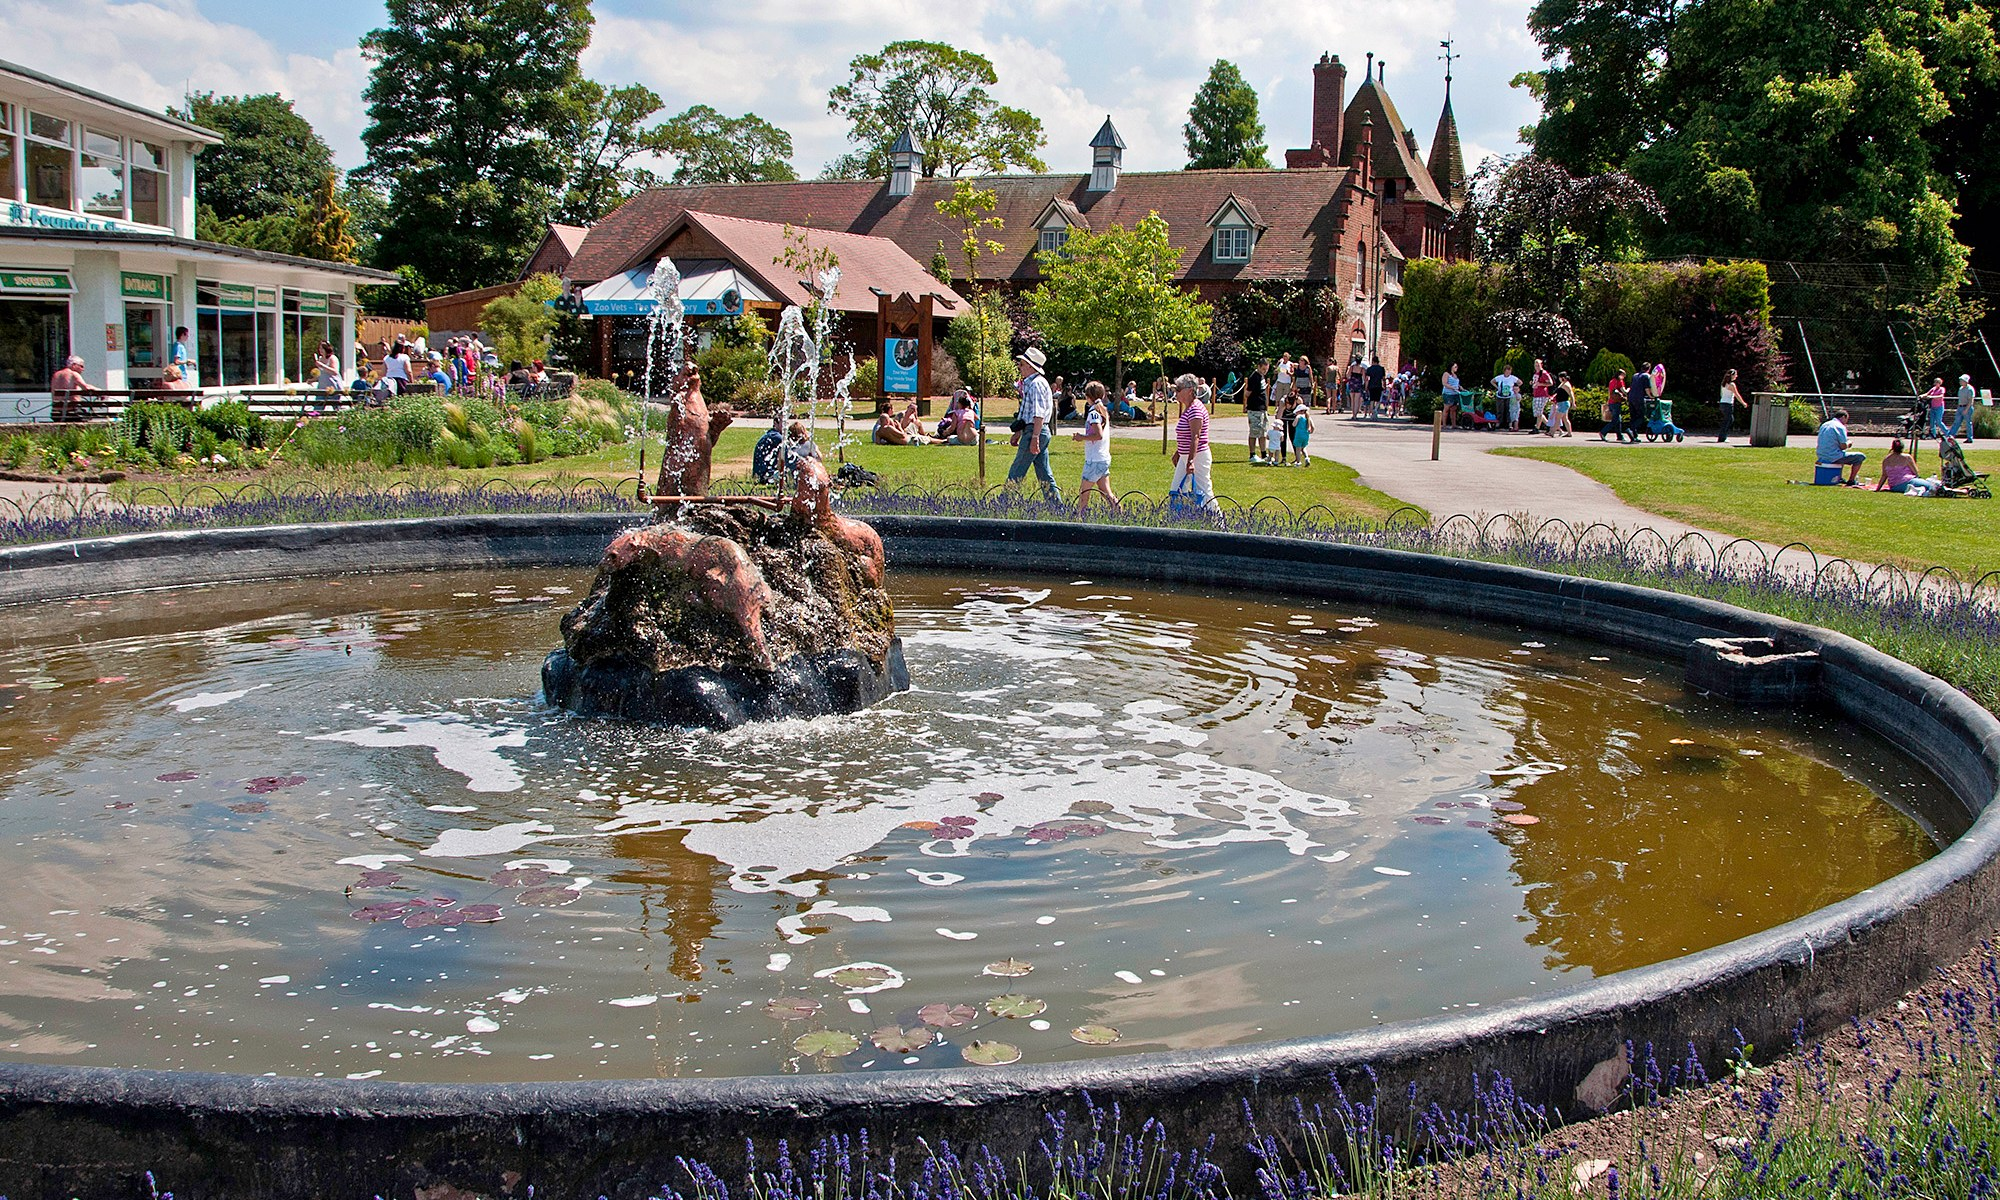 Fountain at Chester Zoo